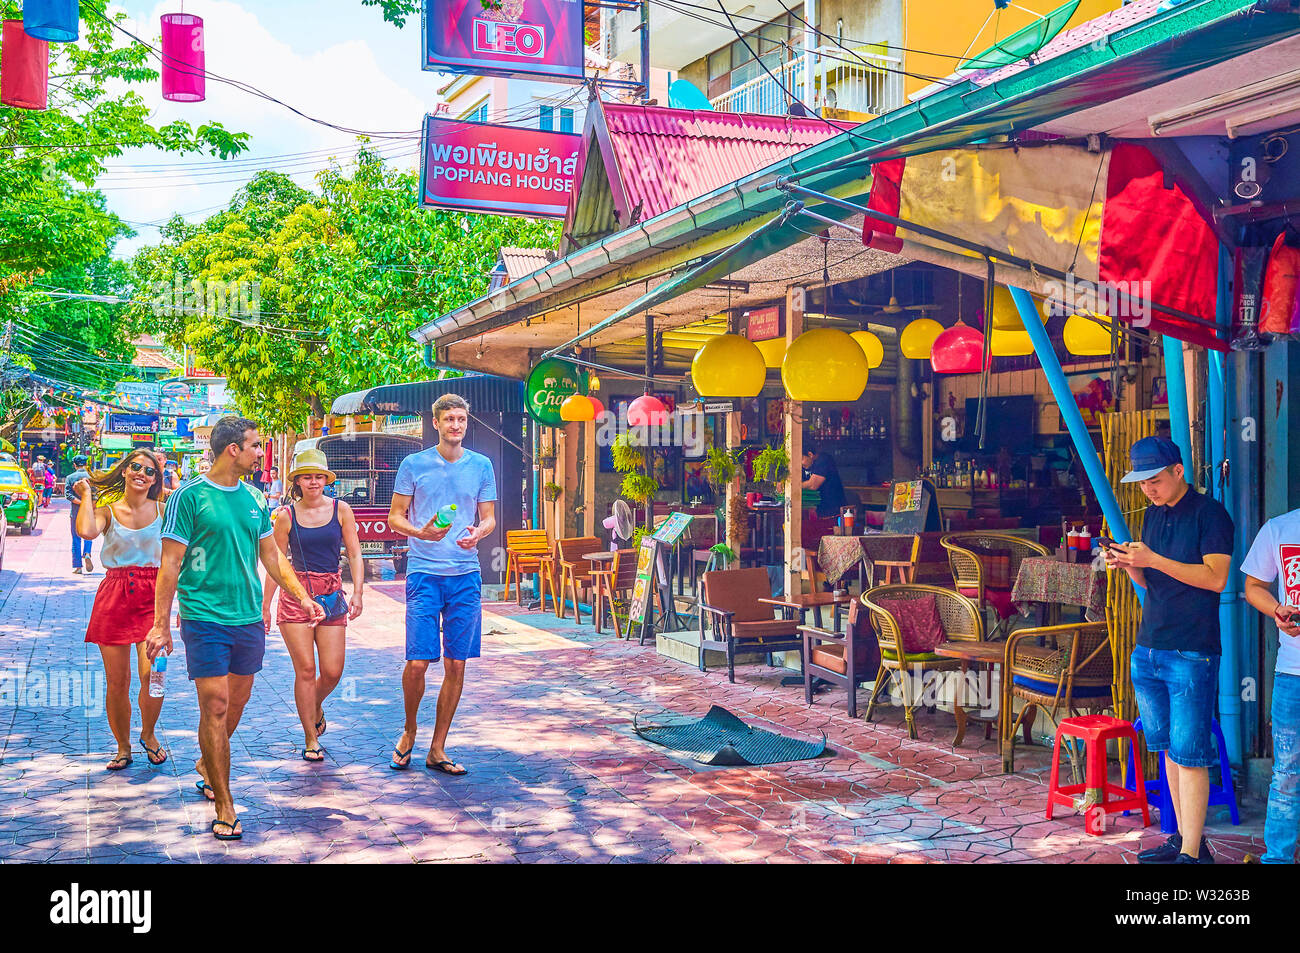 BANGKOK, THAILAND - APRIL 22, 2019: People walk along the bars and restaurants of Ram Buttri street of Banglampu district, on April 22 in Bangkok - Stock Image